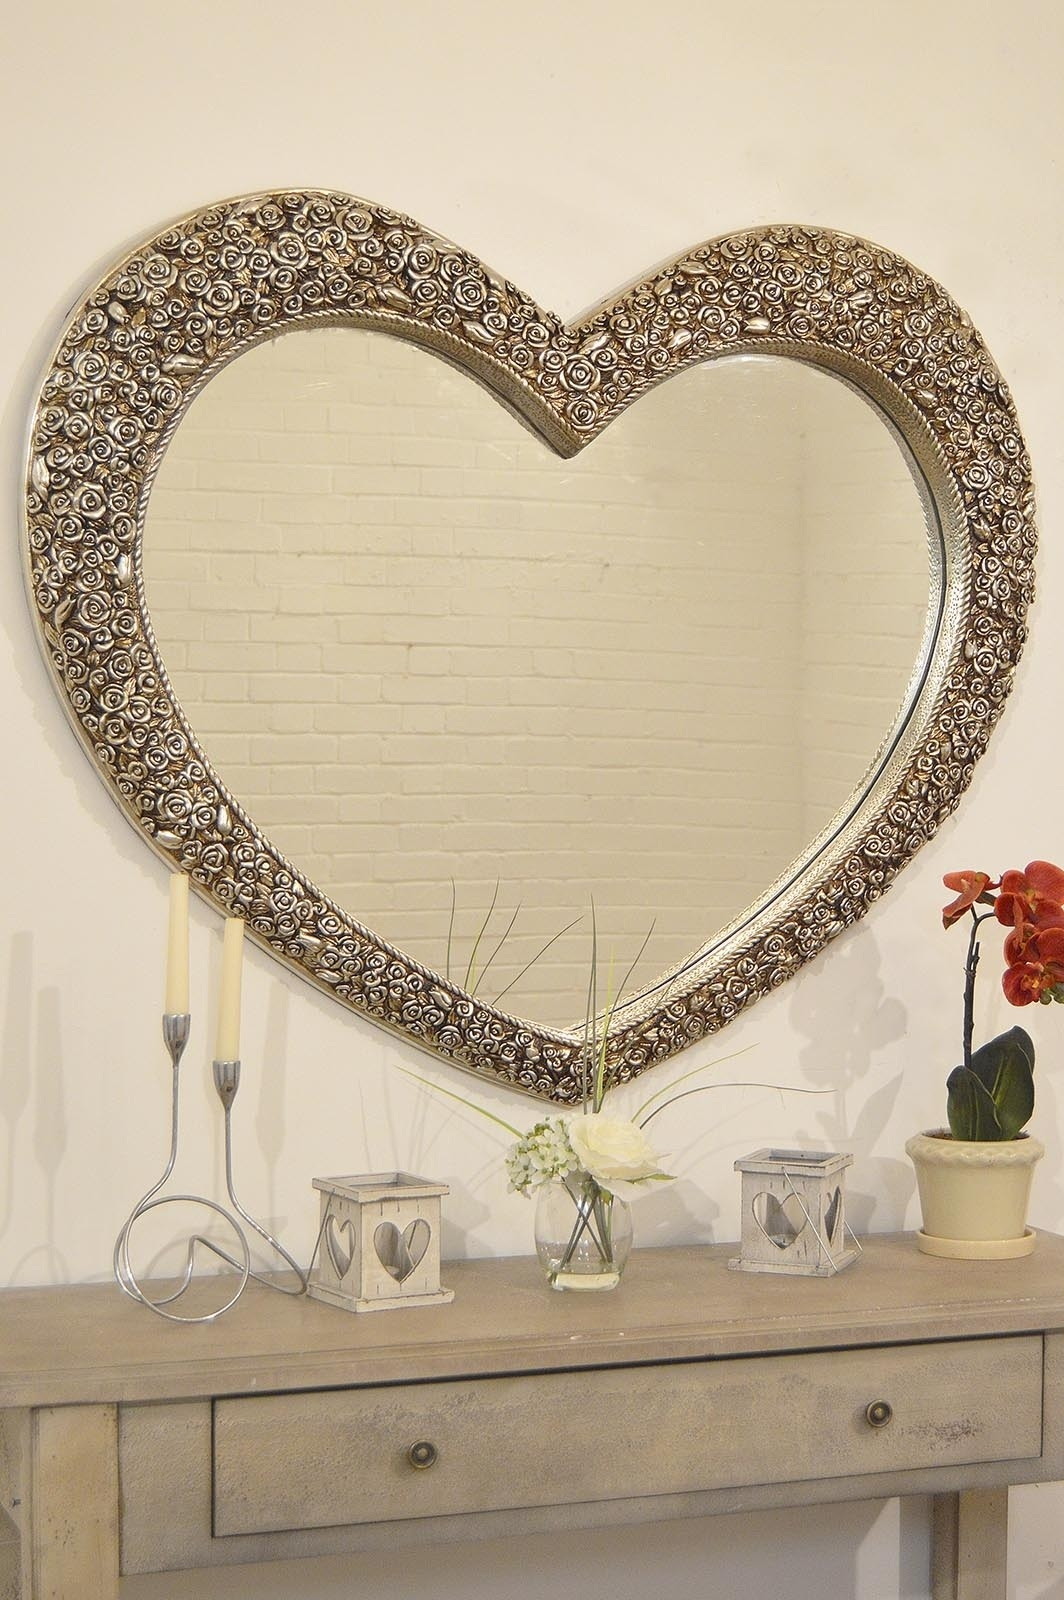 V Large Antique Silver Heart Shaped Wall Mirror 3ft1x3ft7 With Regard To Large Antique Silver Mirror (Photo 4 of 15)